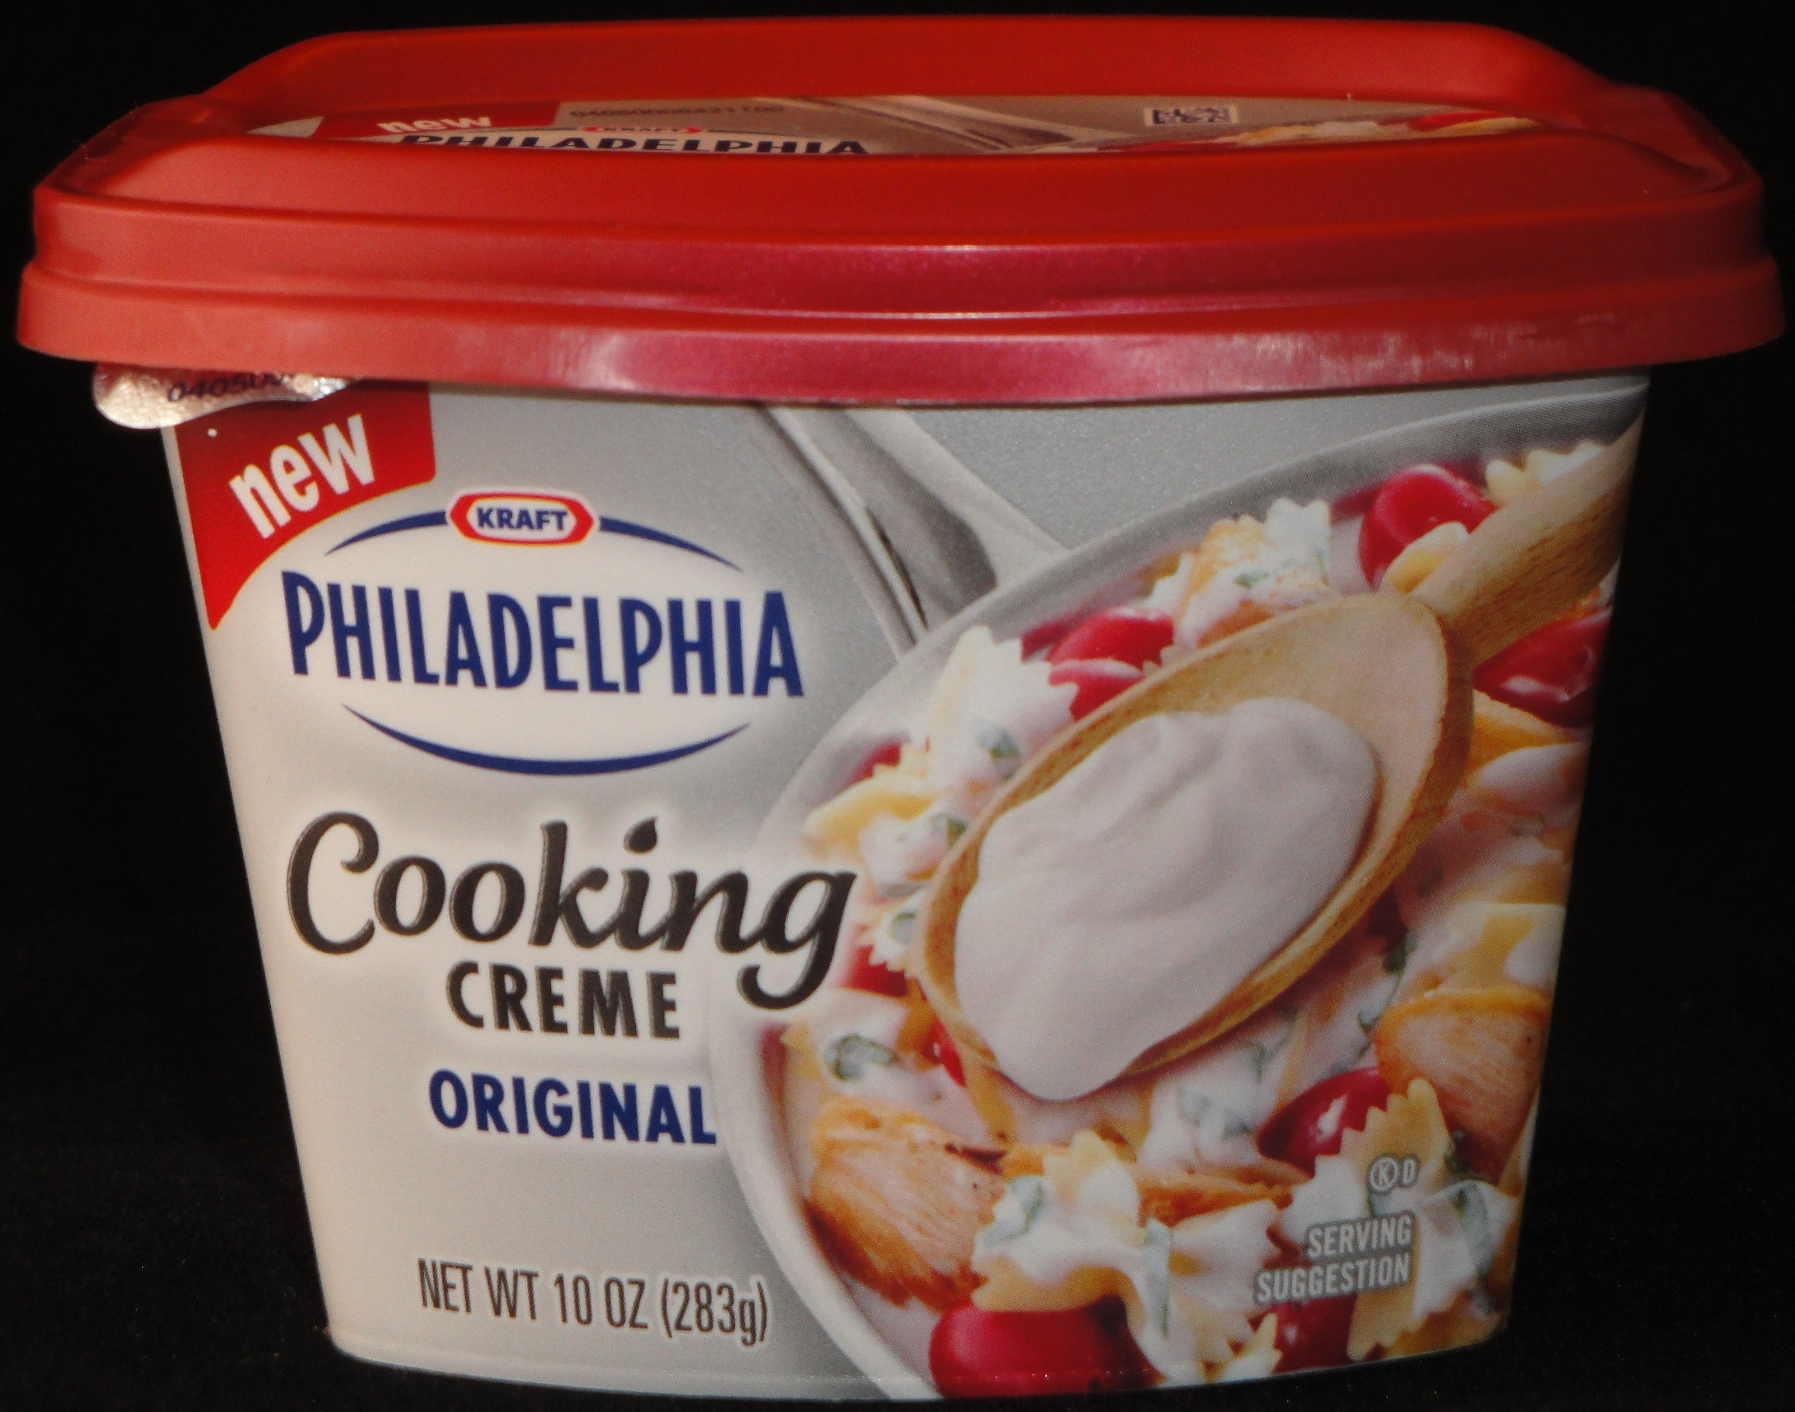 Philadelphia cream cheese cooking creme coupon